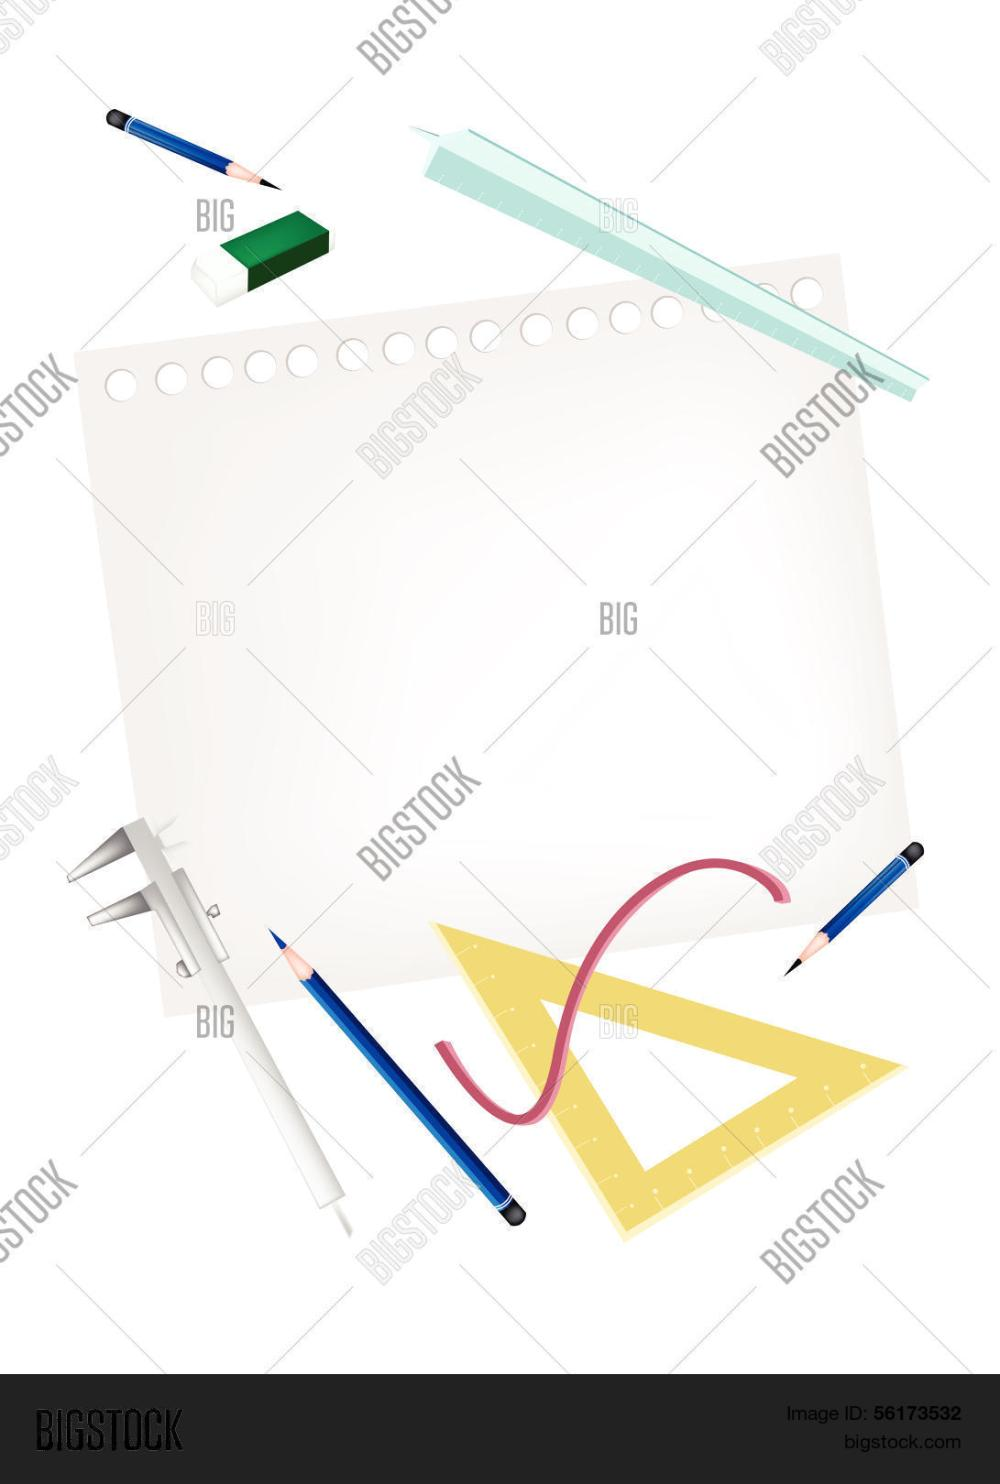 medium resolution of pencil and caliper with rulers and eraser on blank page